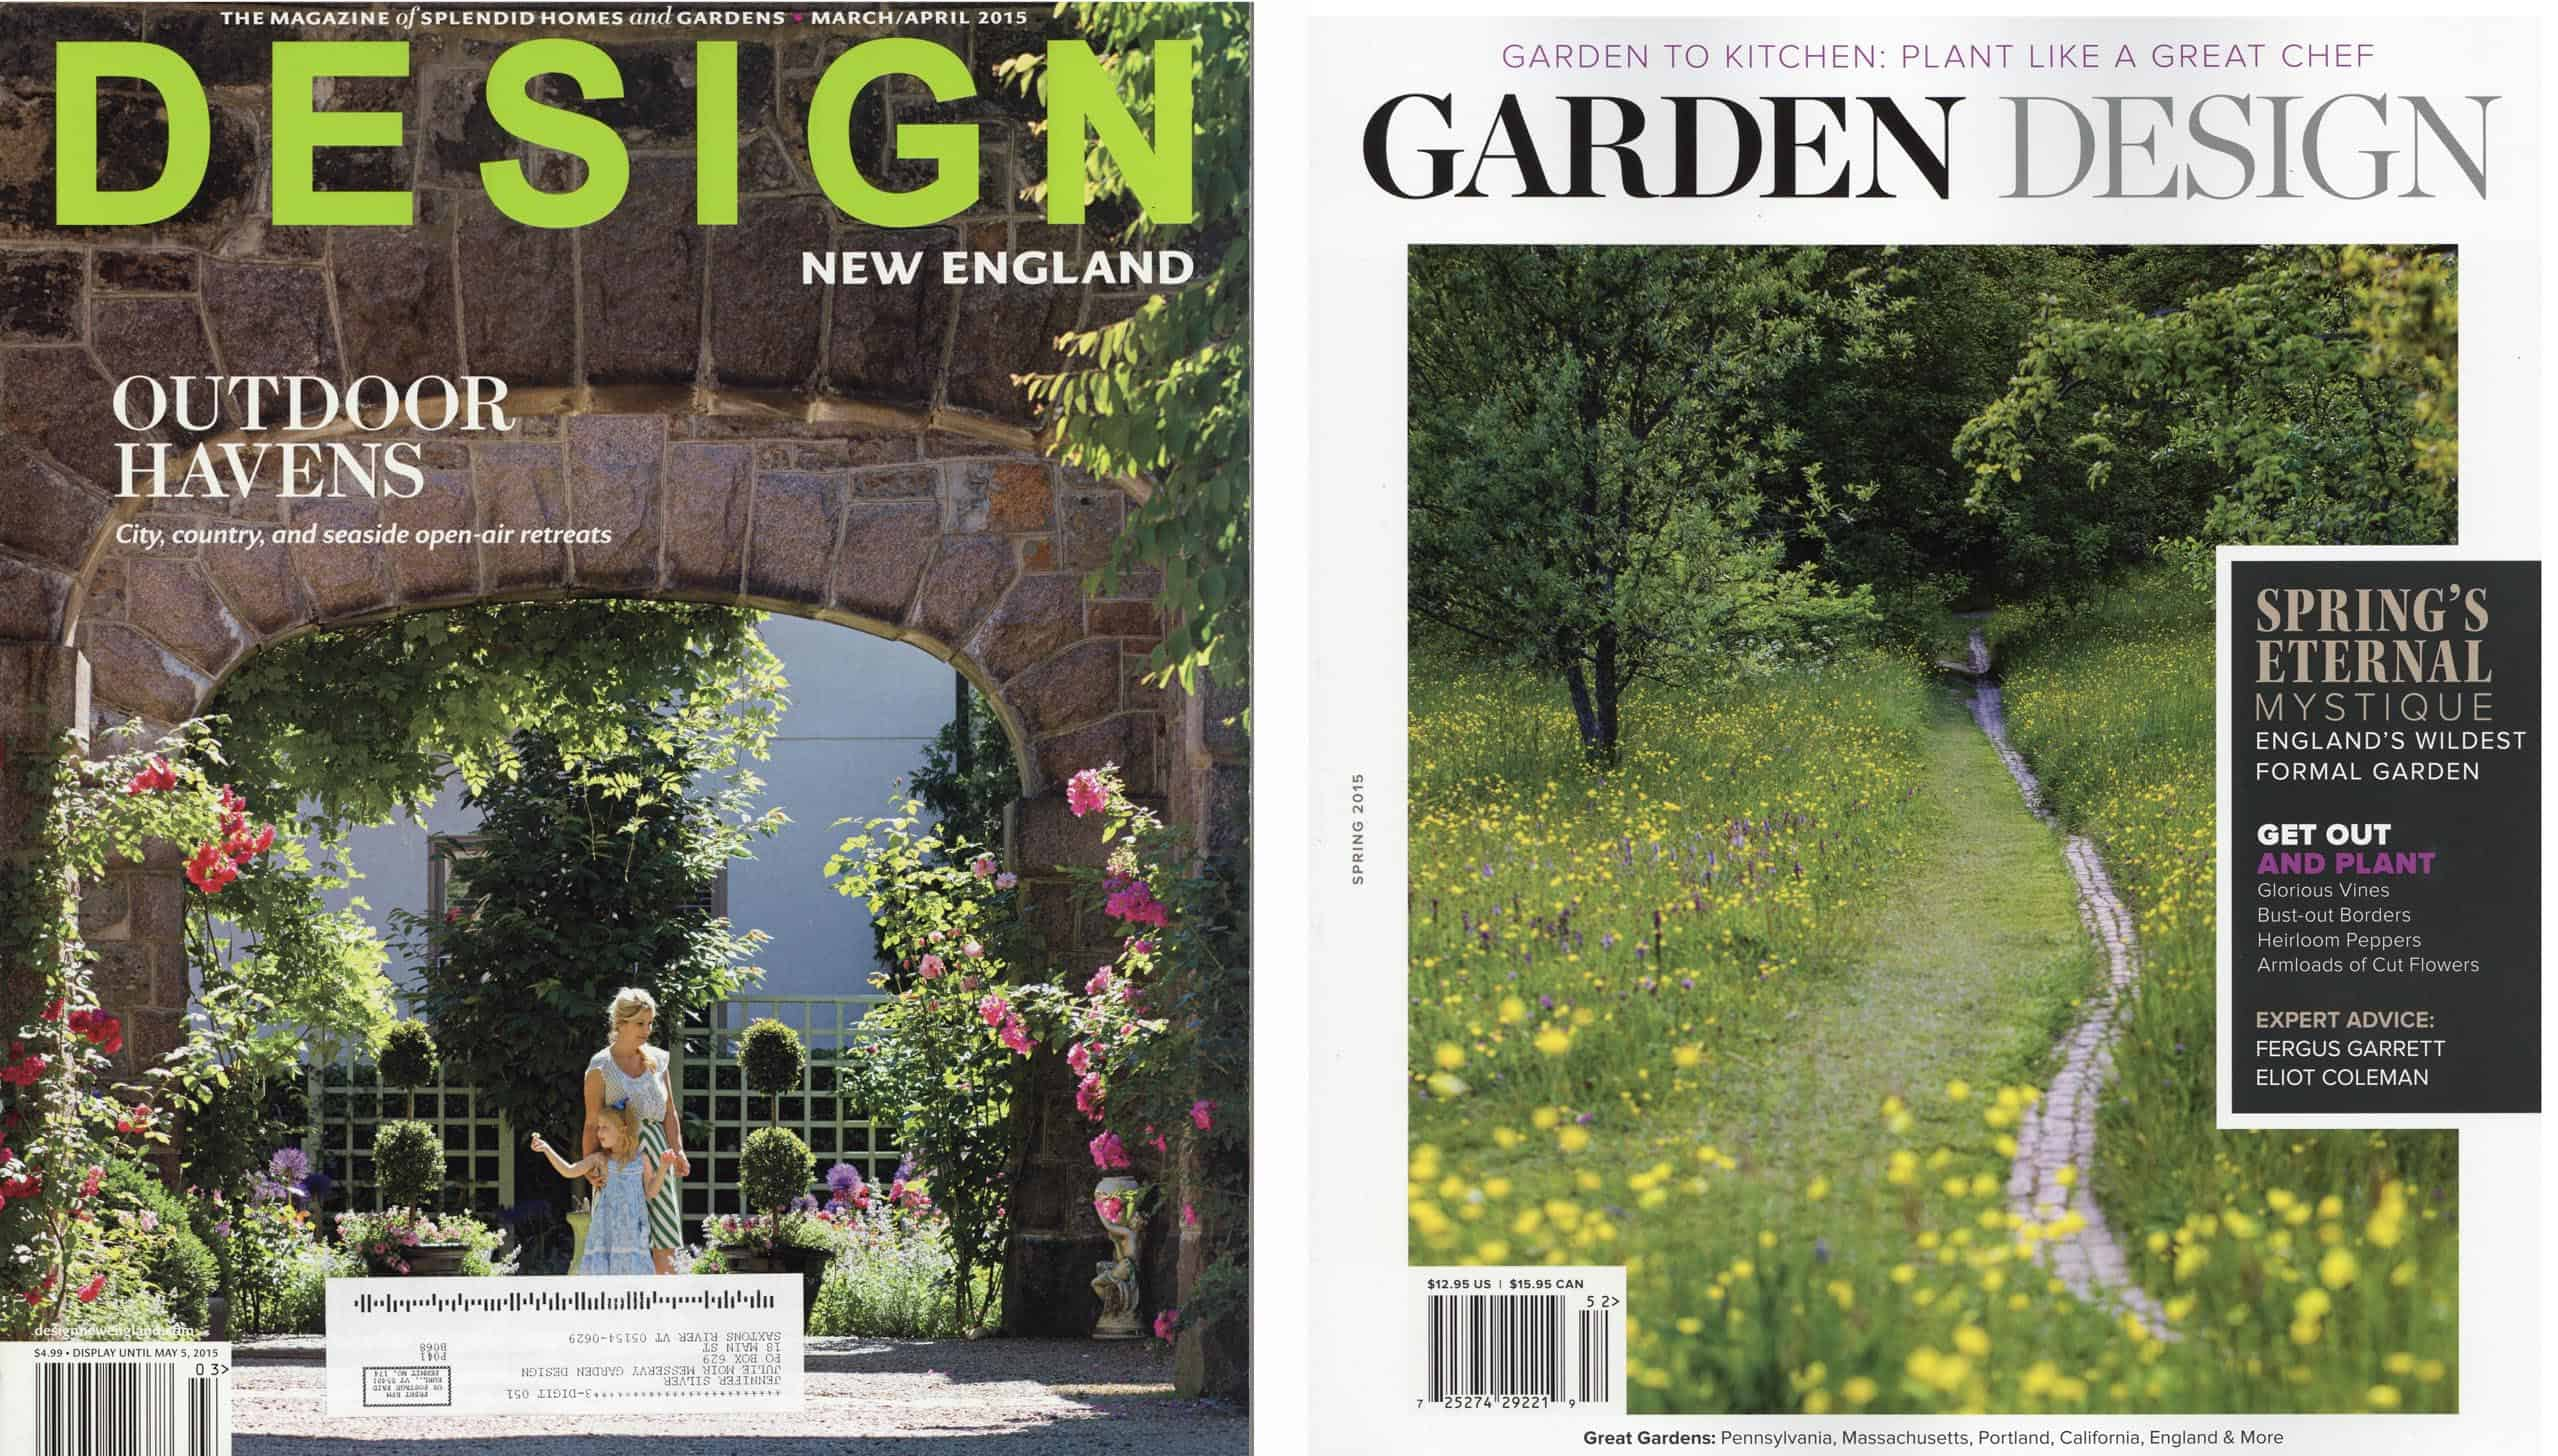 Garden Designer App garden design garden design with nice landscape by marimsm on on landscape planning app Project Has Been Featured In Two Magazines This Month The Marchapril Issue Of Design New England And The Spring Print Issue Of Garden Design